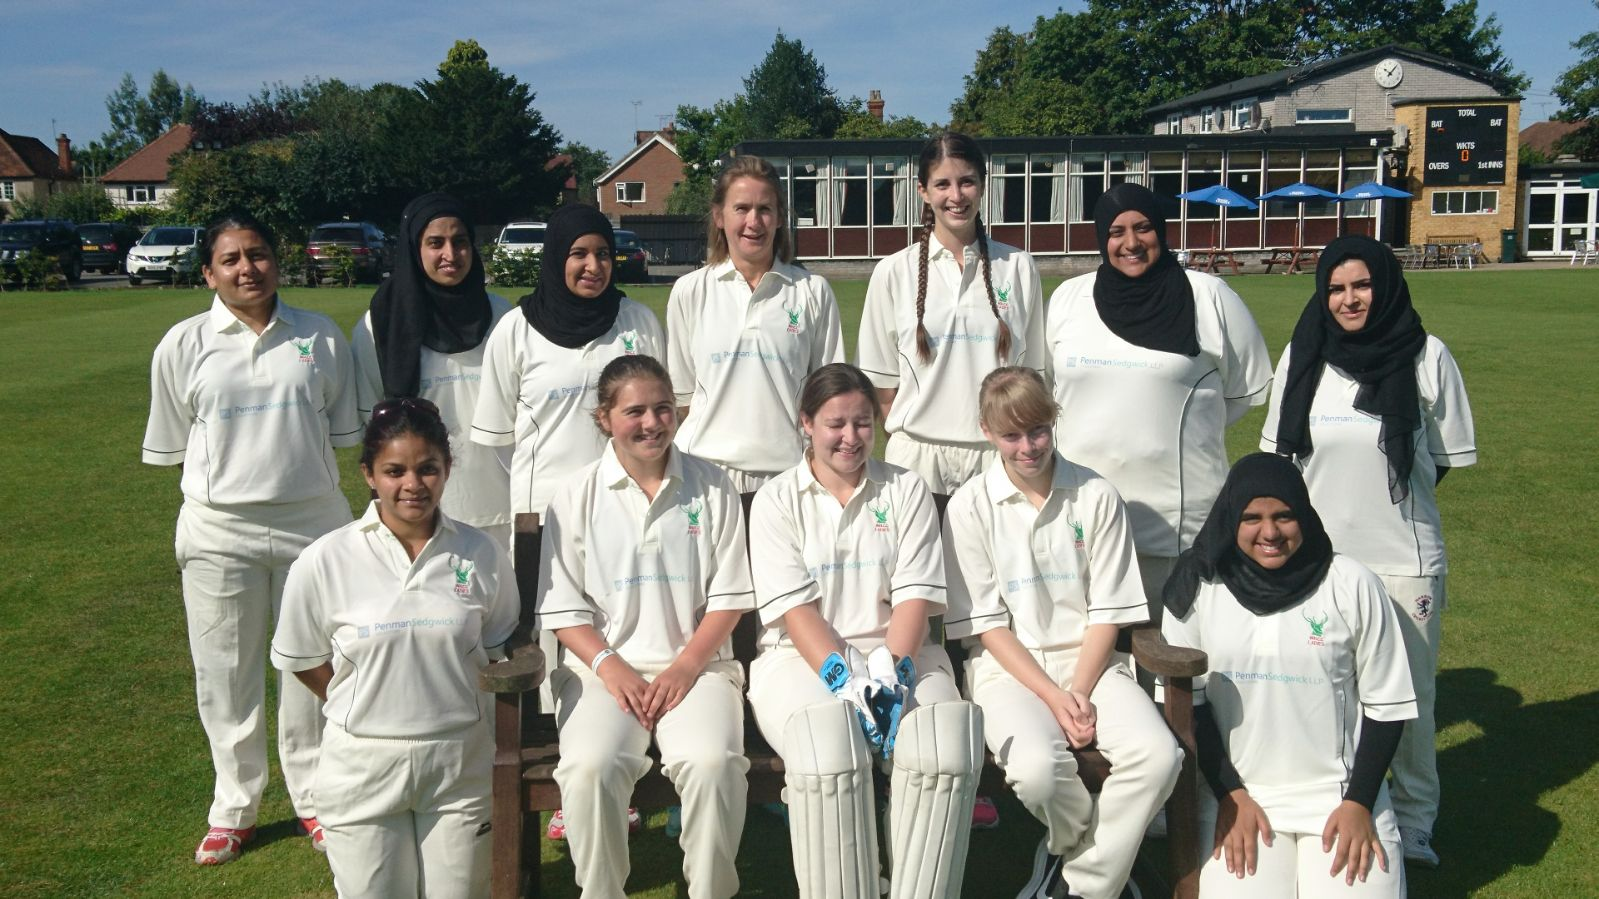 The history-making West Herts ladies side.